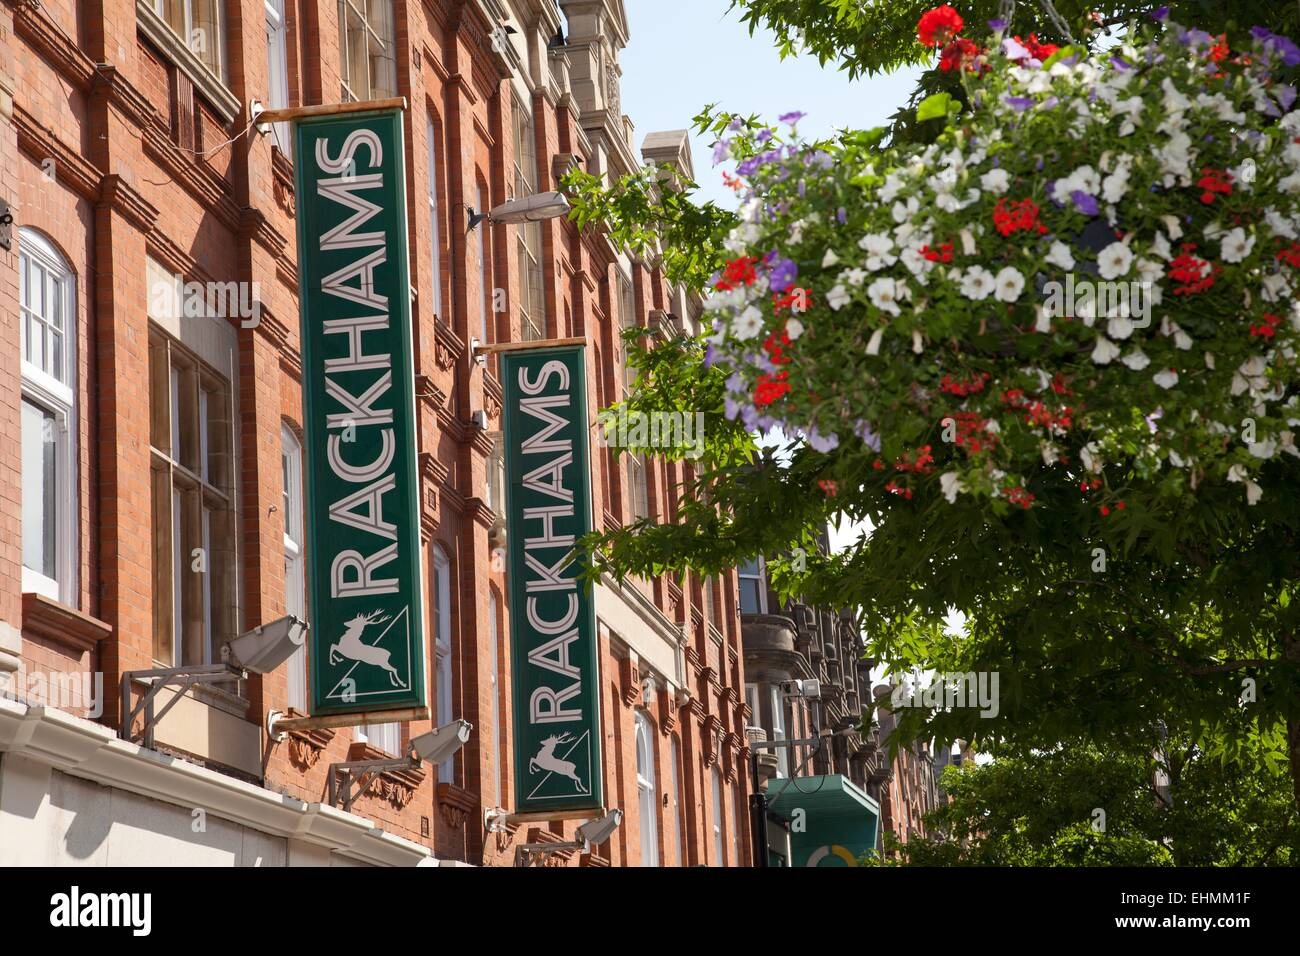 Rackhams Department Store  in Leicester city centre -= House of Fraser group - Stock Image